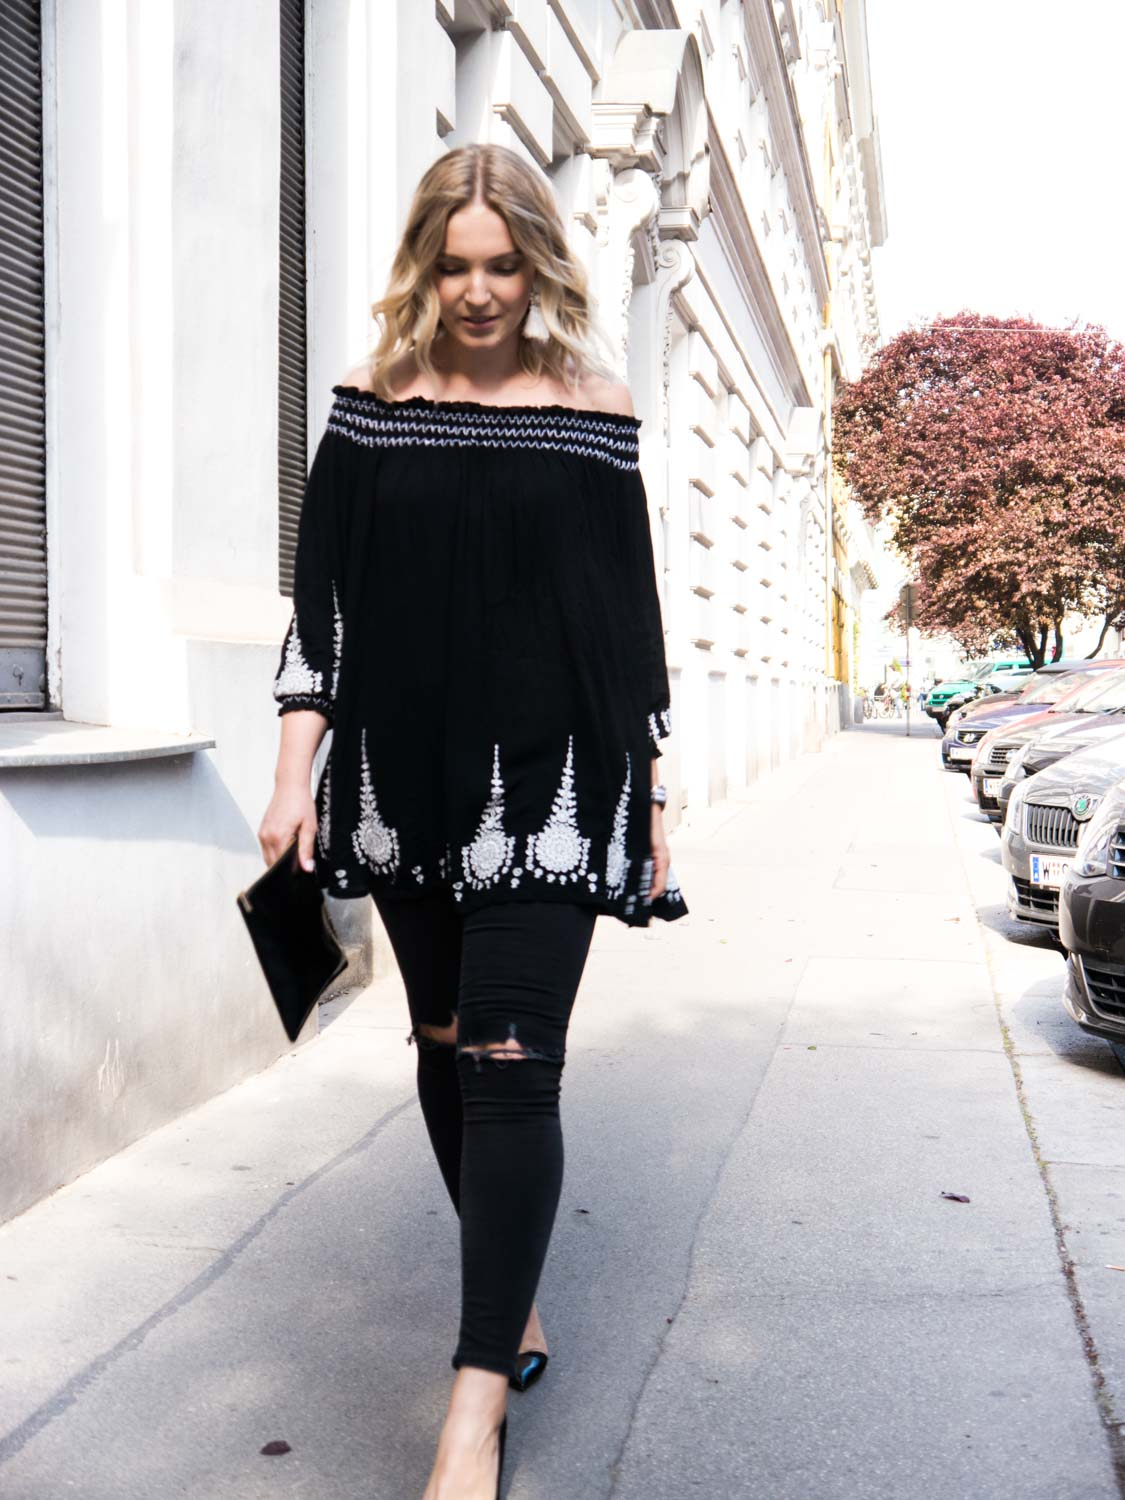 Blog-Your-Style-Outfit-Fashionshooting-Streetstyle-Off-Shoulder-Trend-Fashionblog-Austria-Giveherglitter-ripped-Jeans-1